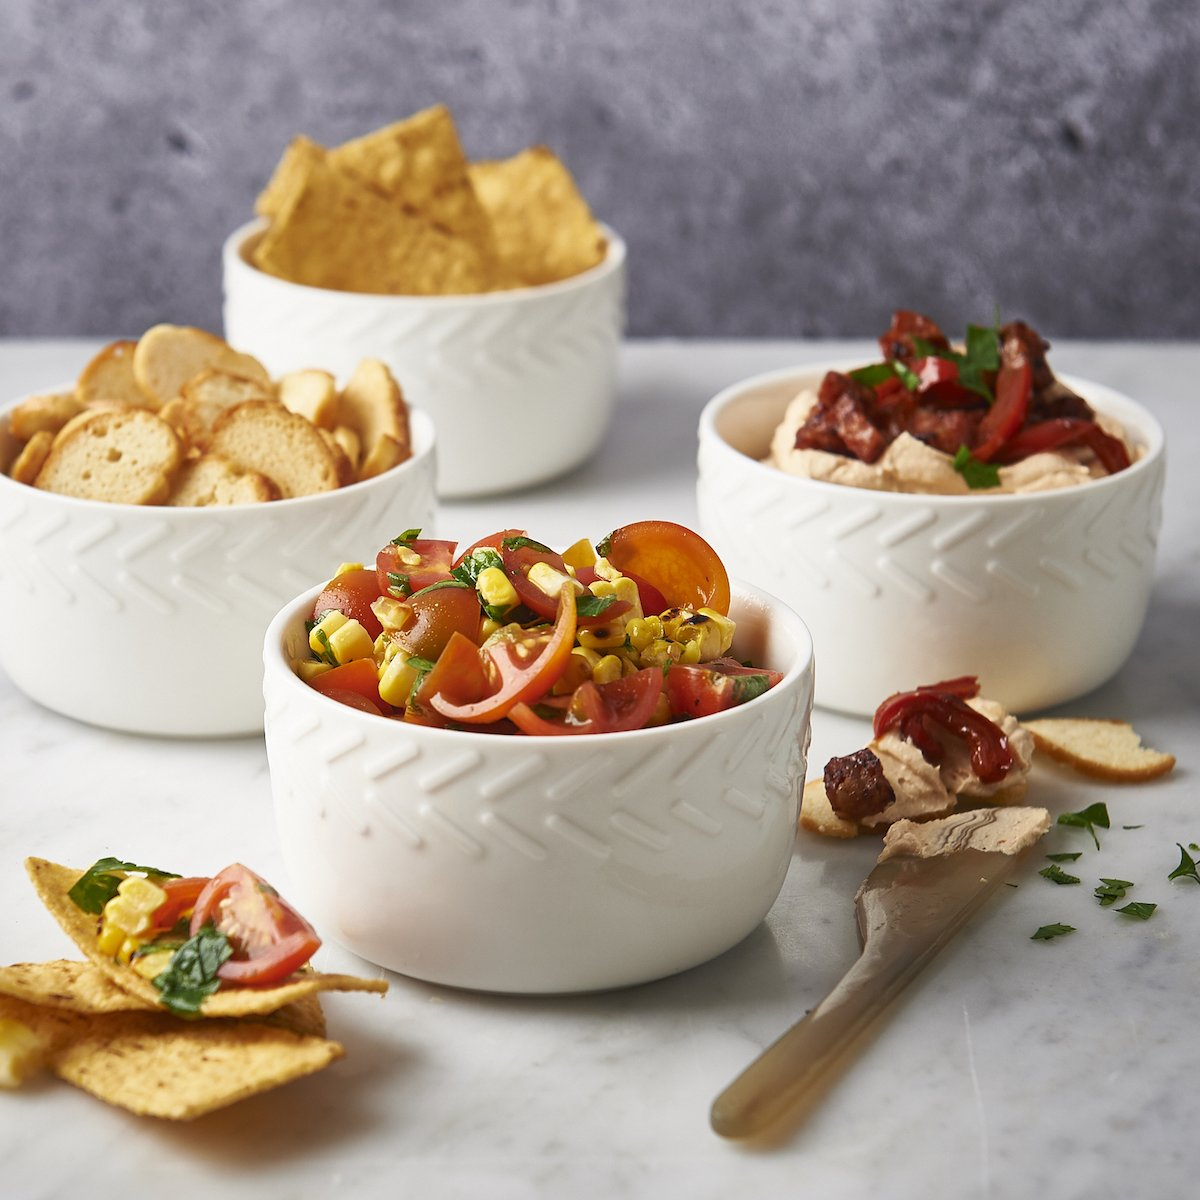 8.5oz Ramekins by CIROA Dips and Condiments Set of 4 Bowls for Baking Snacks